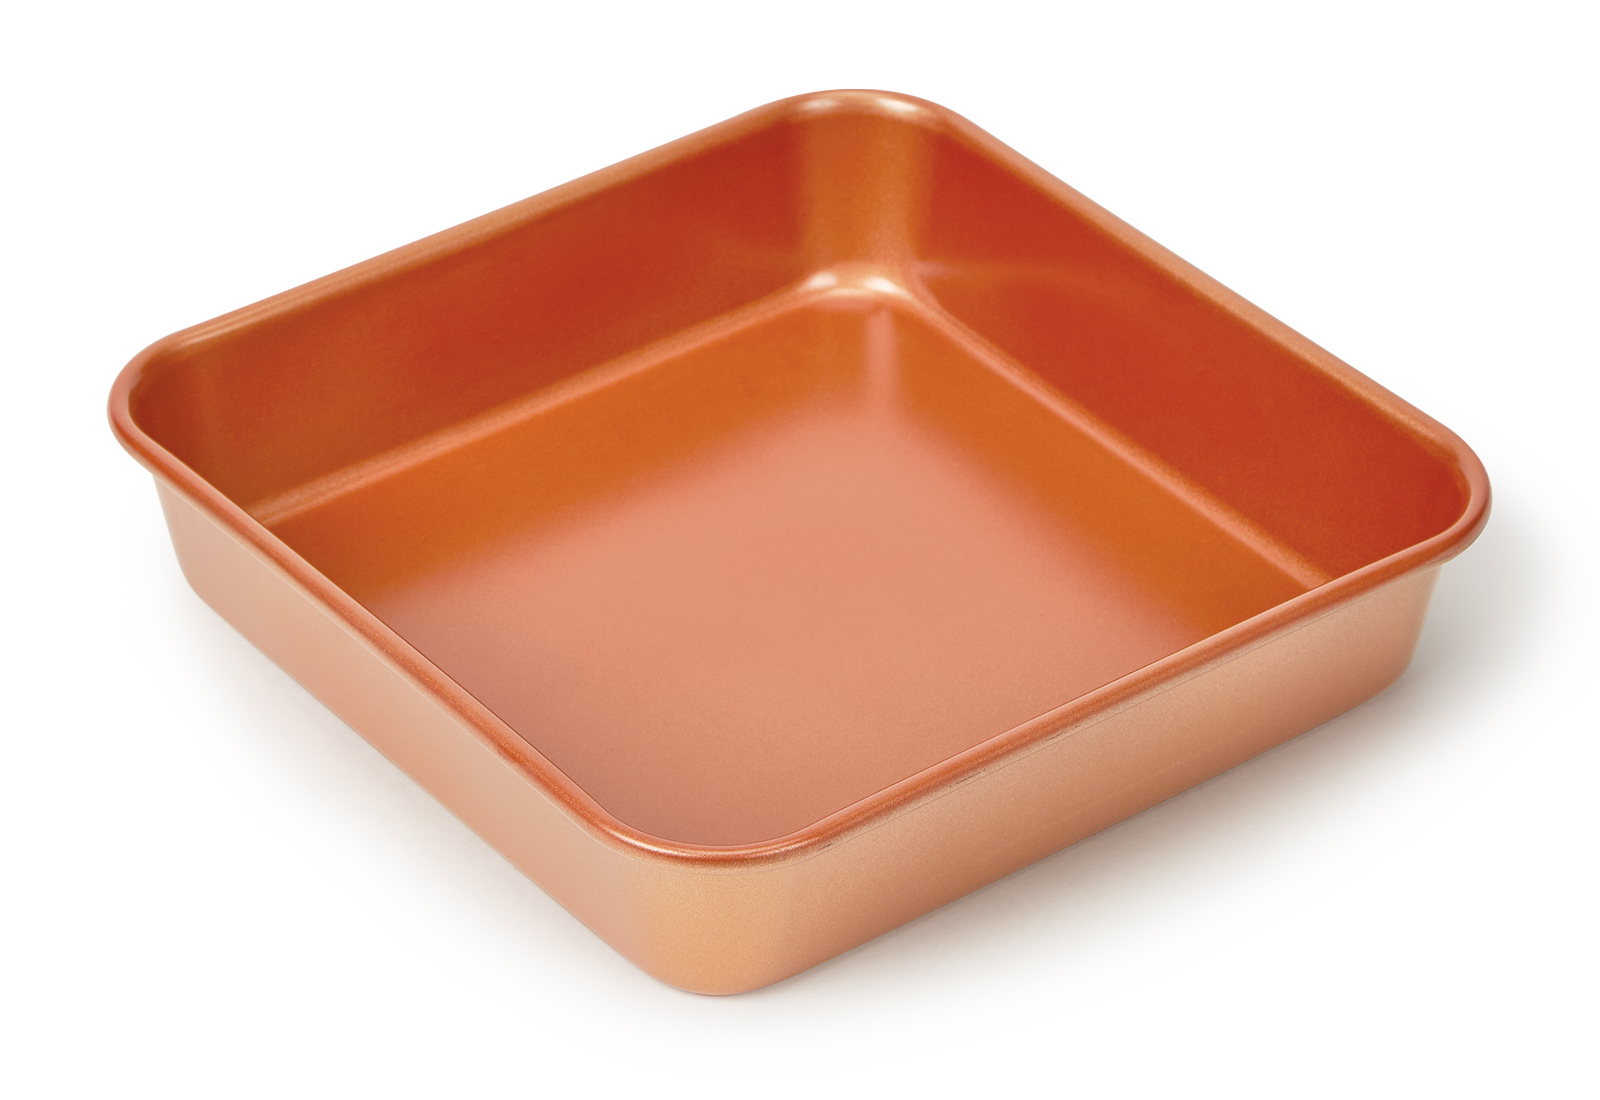 Copper Chef Cake Pan Product Image